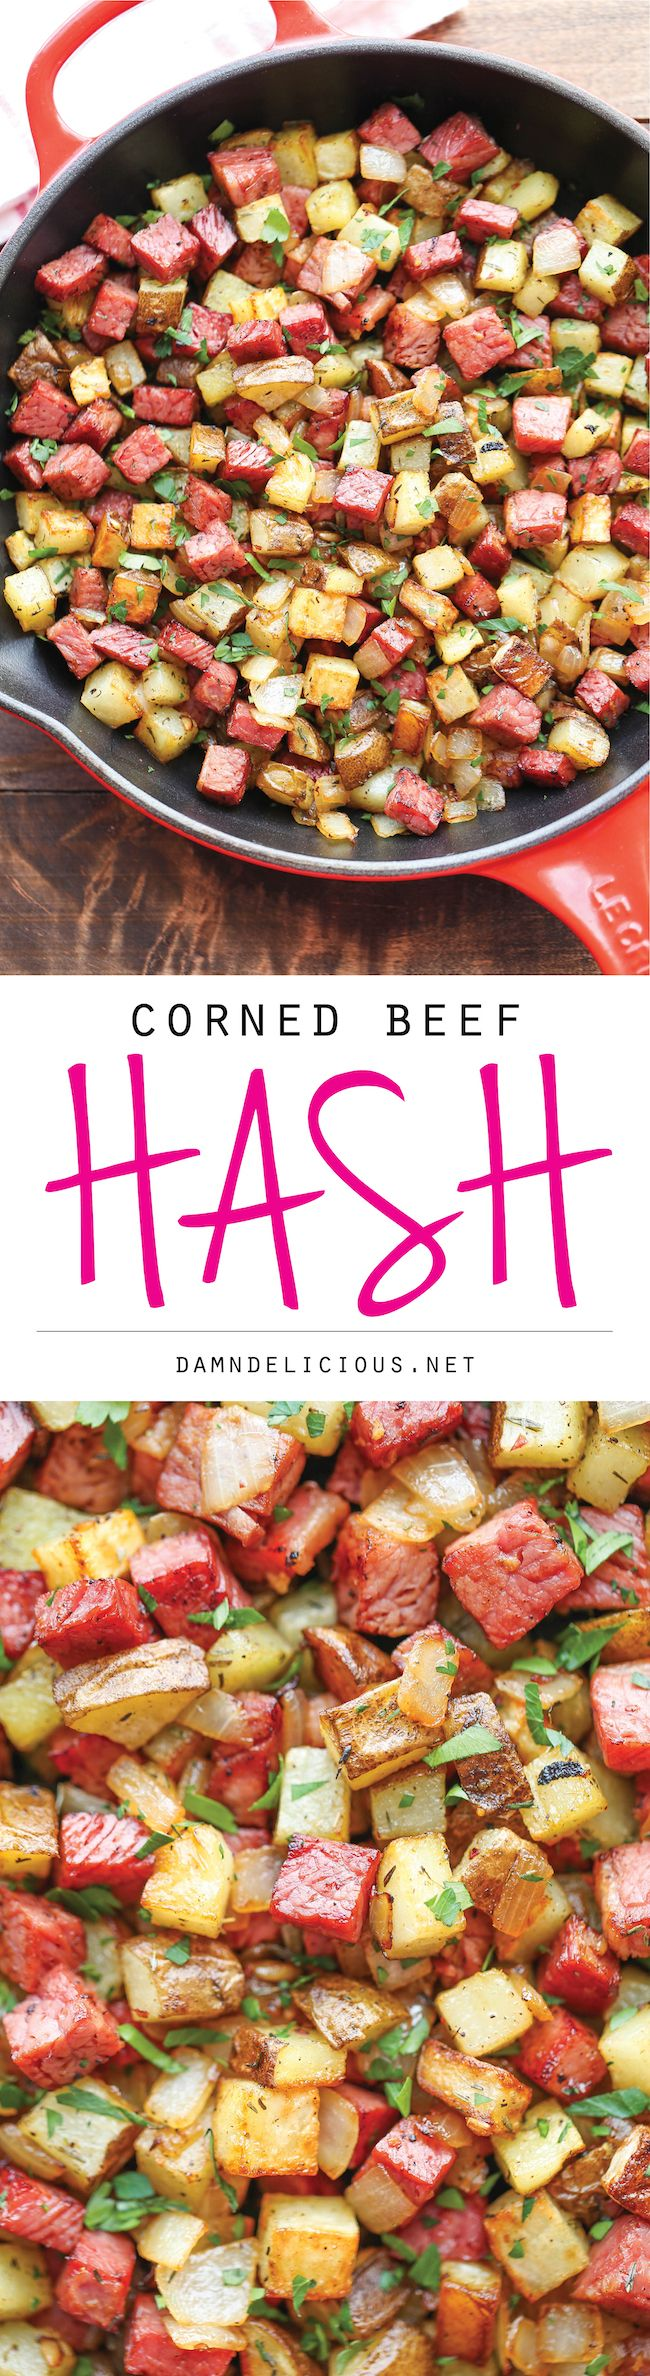 Corned Beef Hash - The most amazing no-fuss hash with roasted potatoes for that extra crispness. So good, you'll want this all day long, all year long!